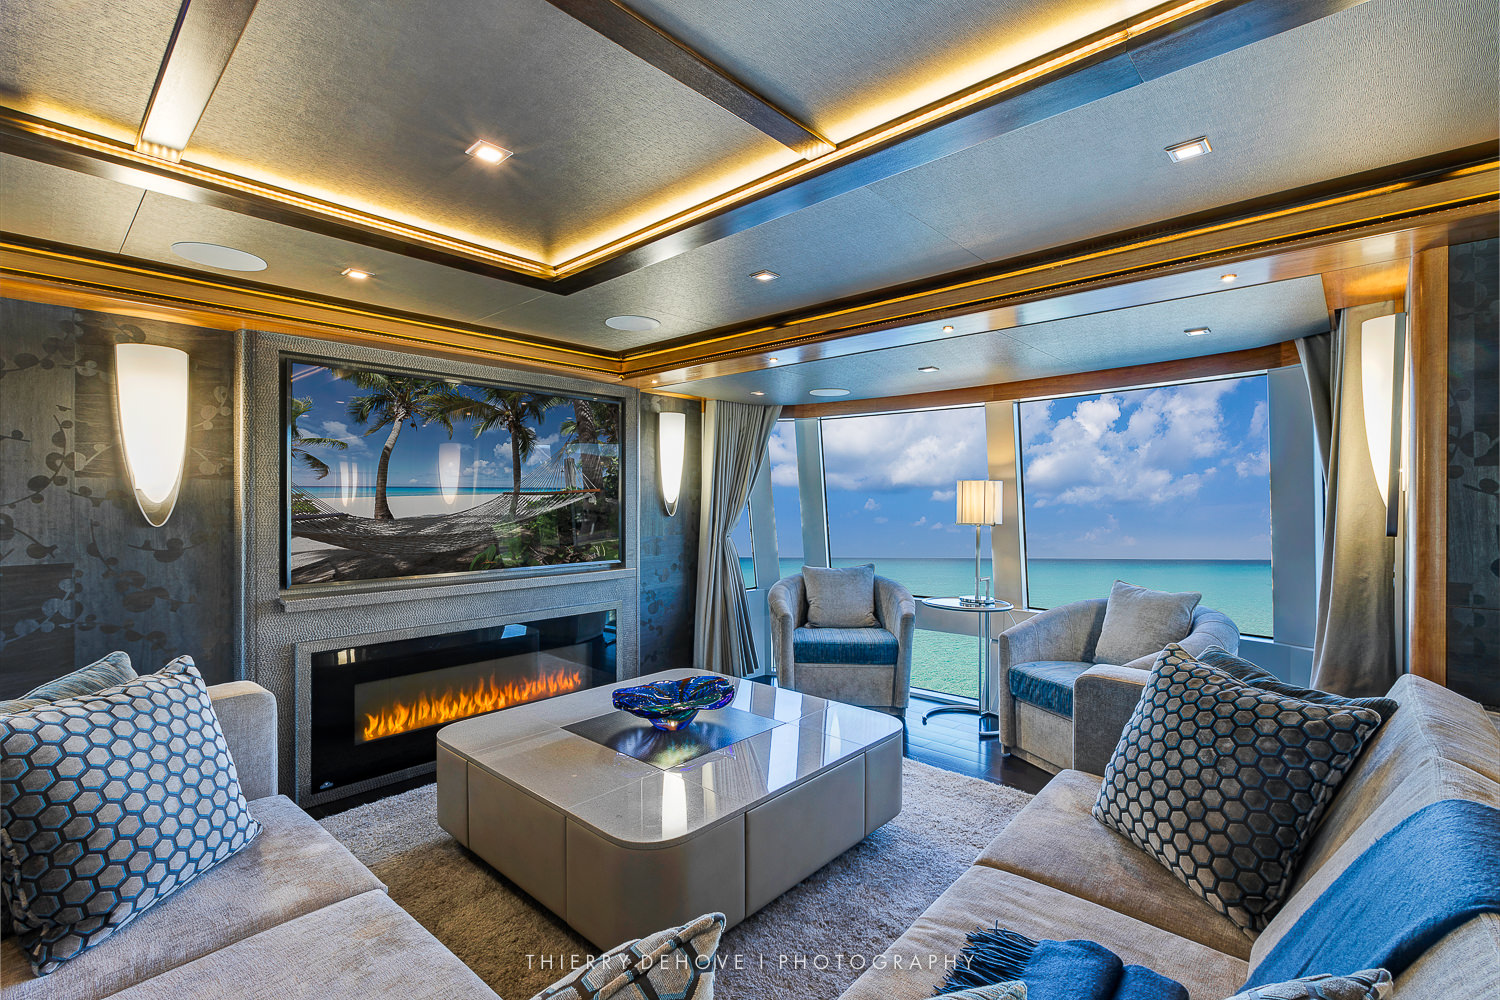 Serenity Luxury Yacht 133 Interior Welcome To Thierry